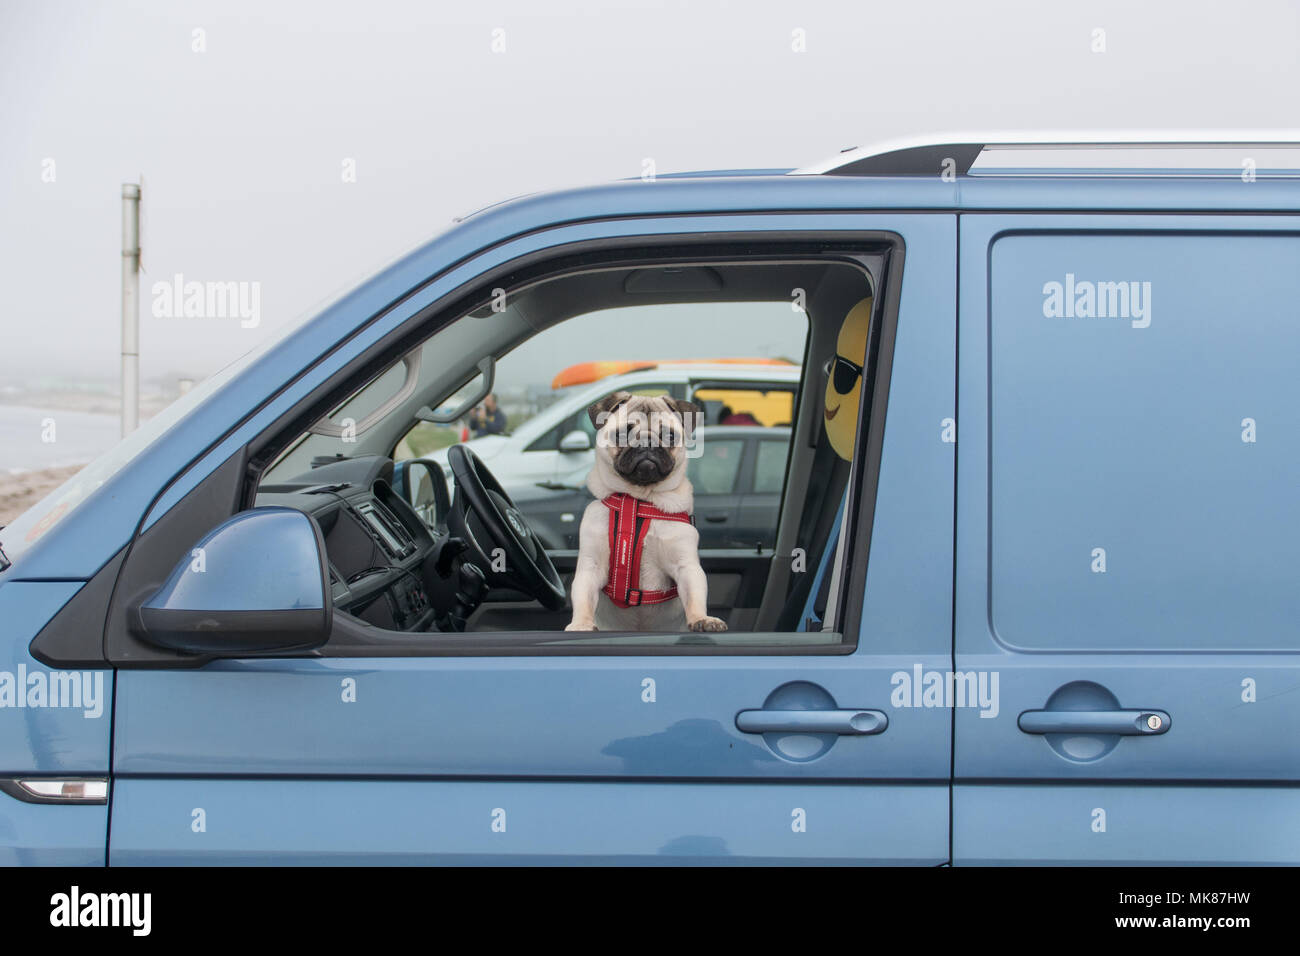 Pug dog looking out of van window looking glum, with a smiley face cushion behind him. - Stock Image